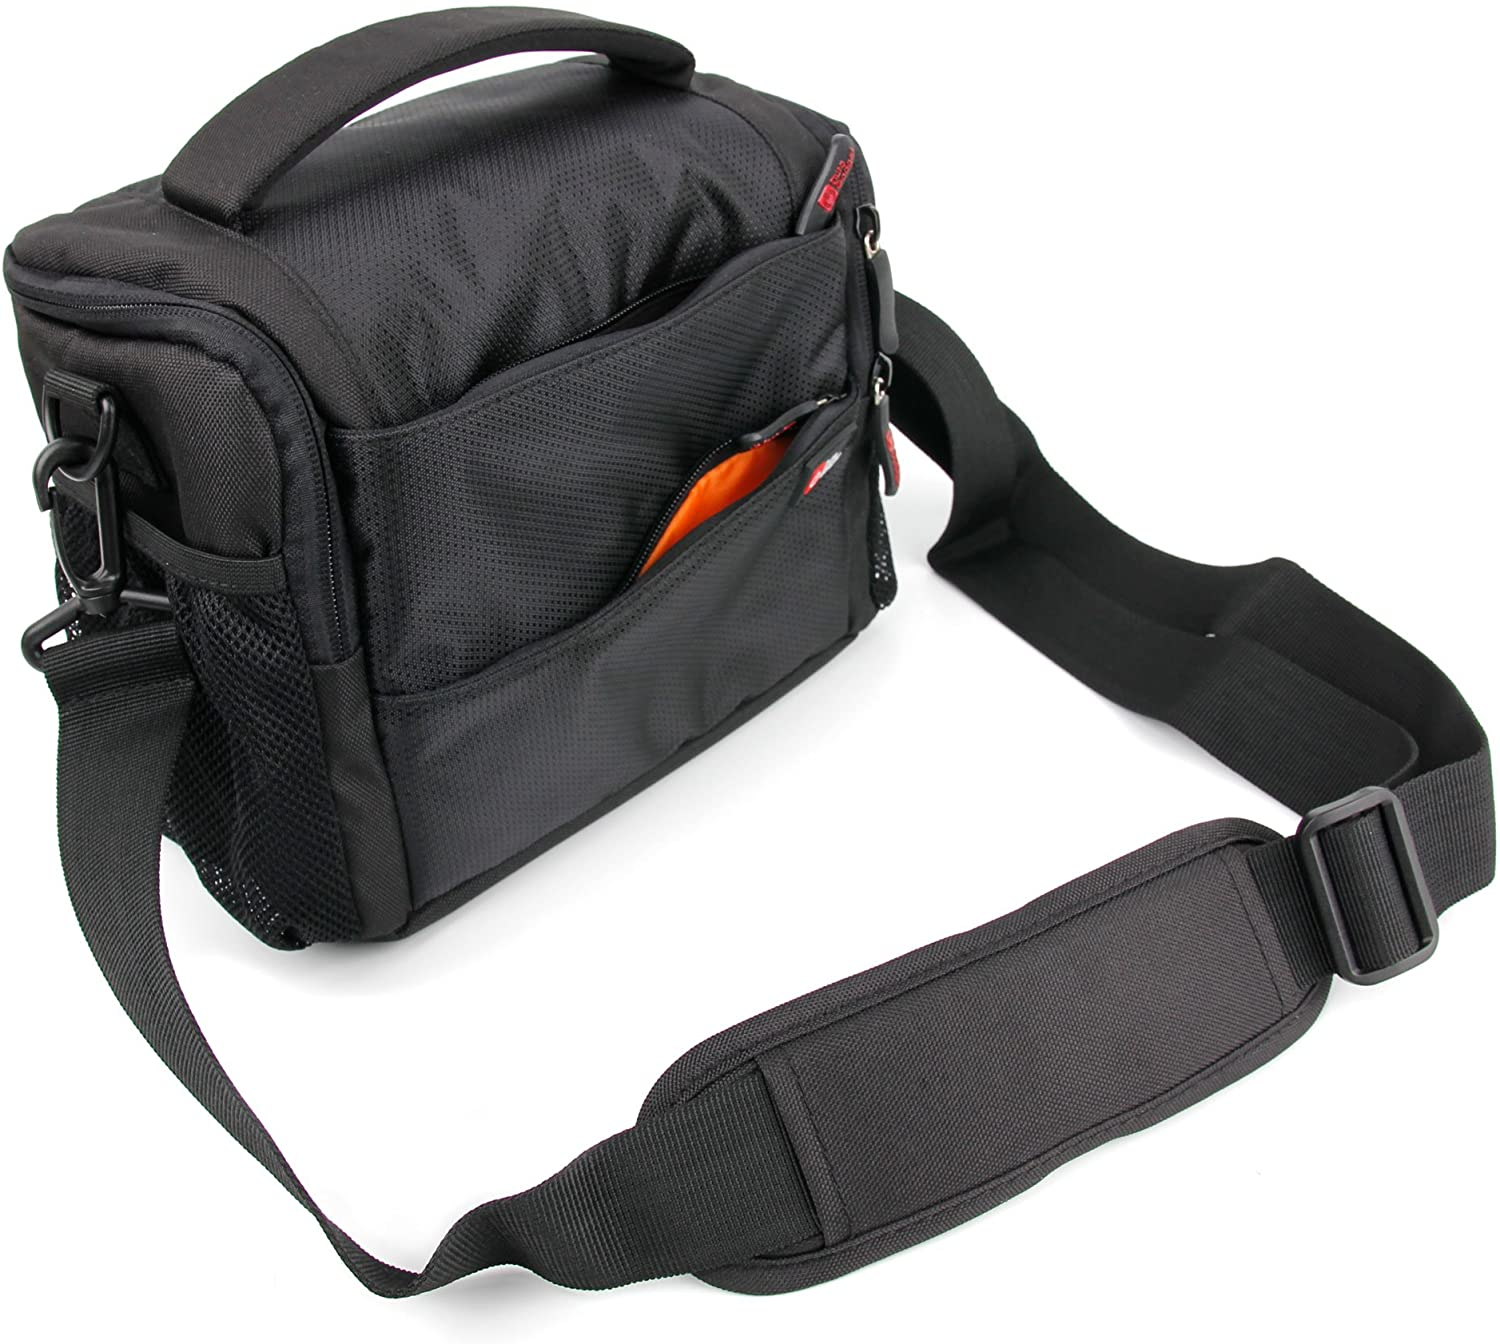 DURAGADGET Black & Orange Shock-Absorbing & Water-Resistant Carry Bag - Compatible with NOCOEX 10X26 EX6119